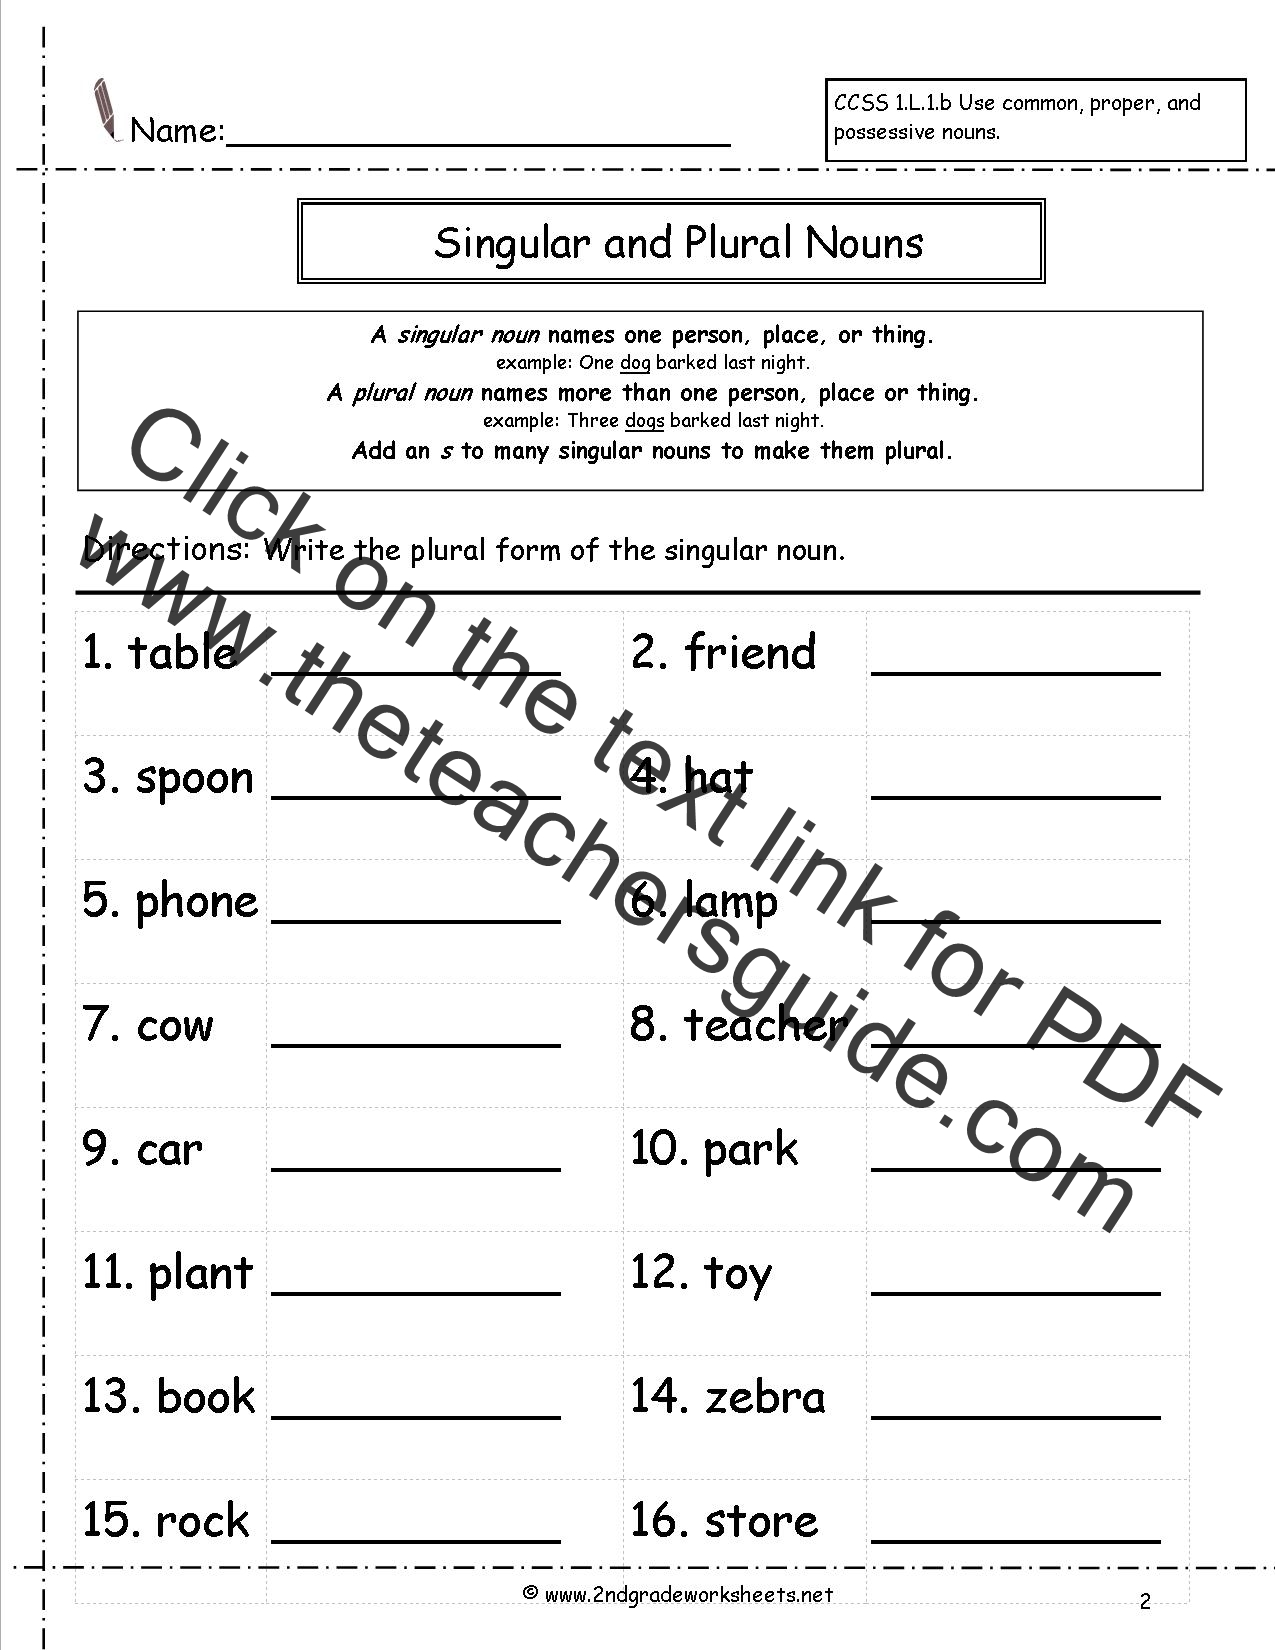 math worksheet : singular and plural nouns worksheets : Singular And Plural Nouns Worksheets For Kindergarten